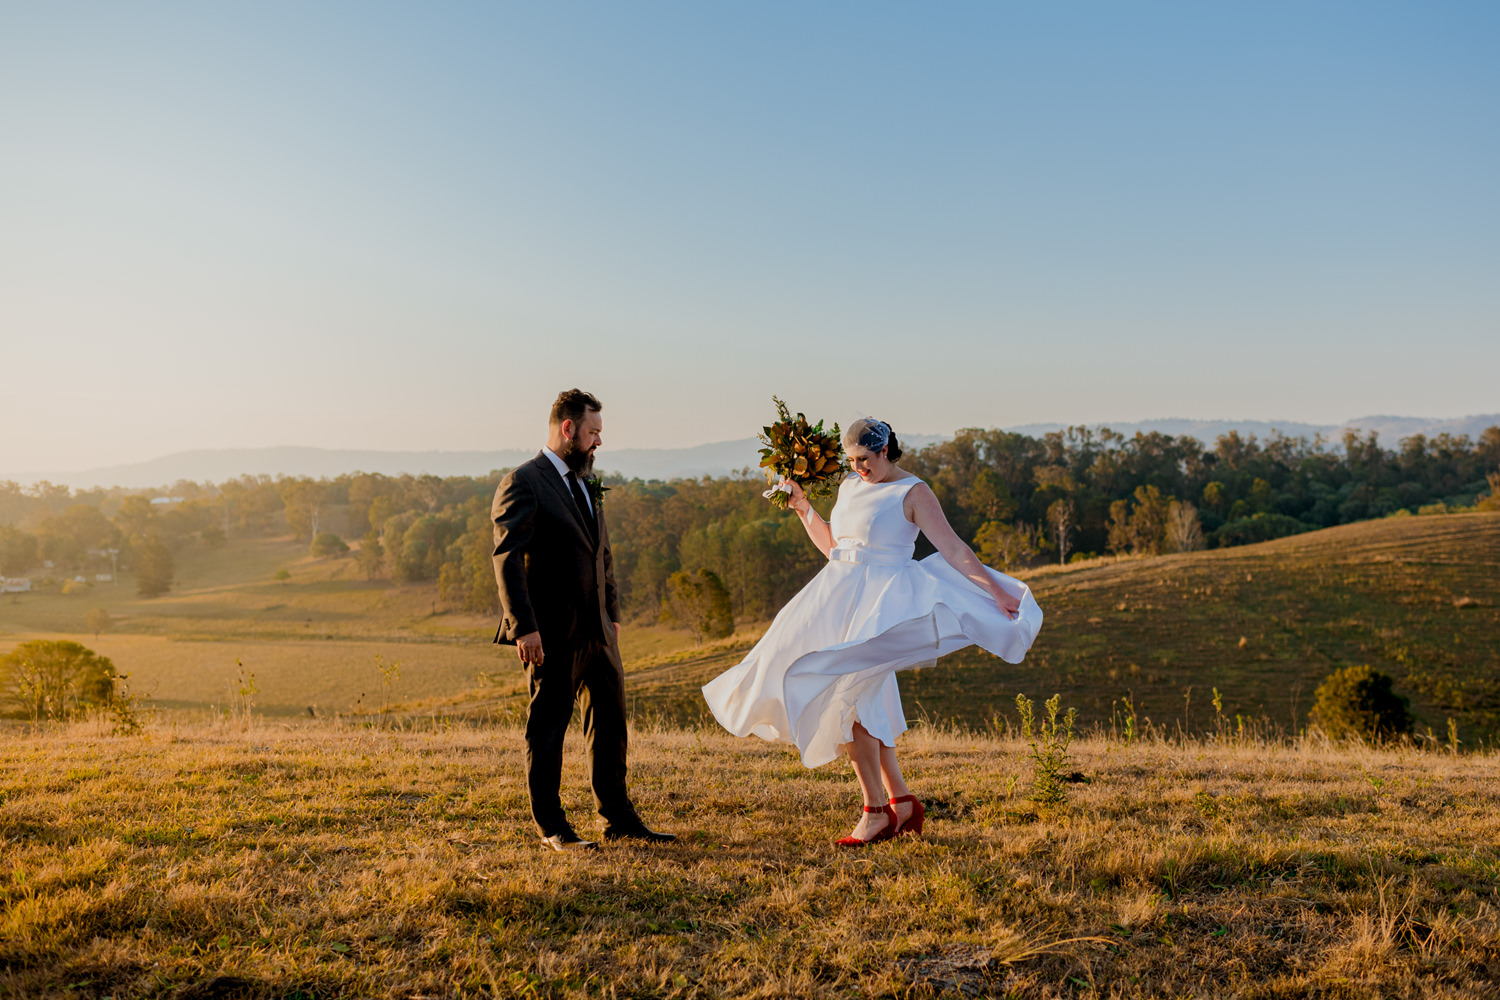 Bride spinning her dress as groom watches on a grassy hill